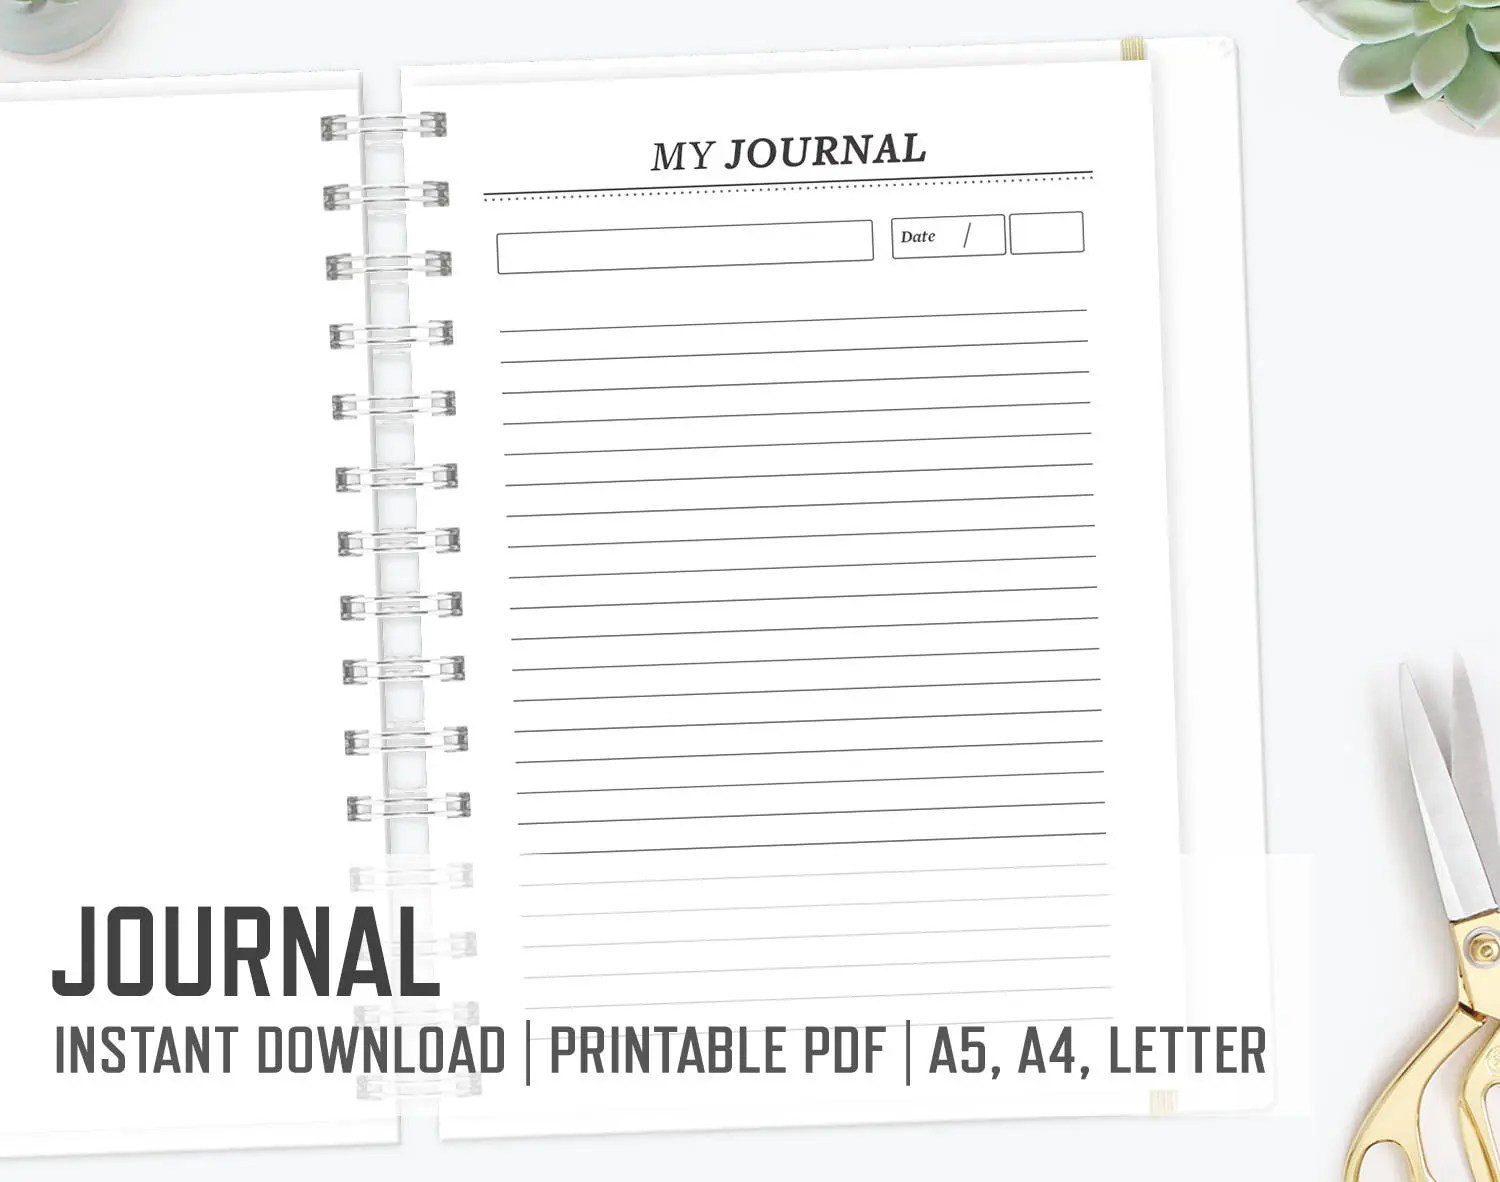 Journal Diary / Personal Day Journal Personal Reflection Etsy